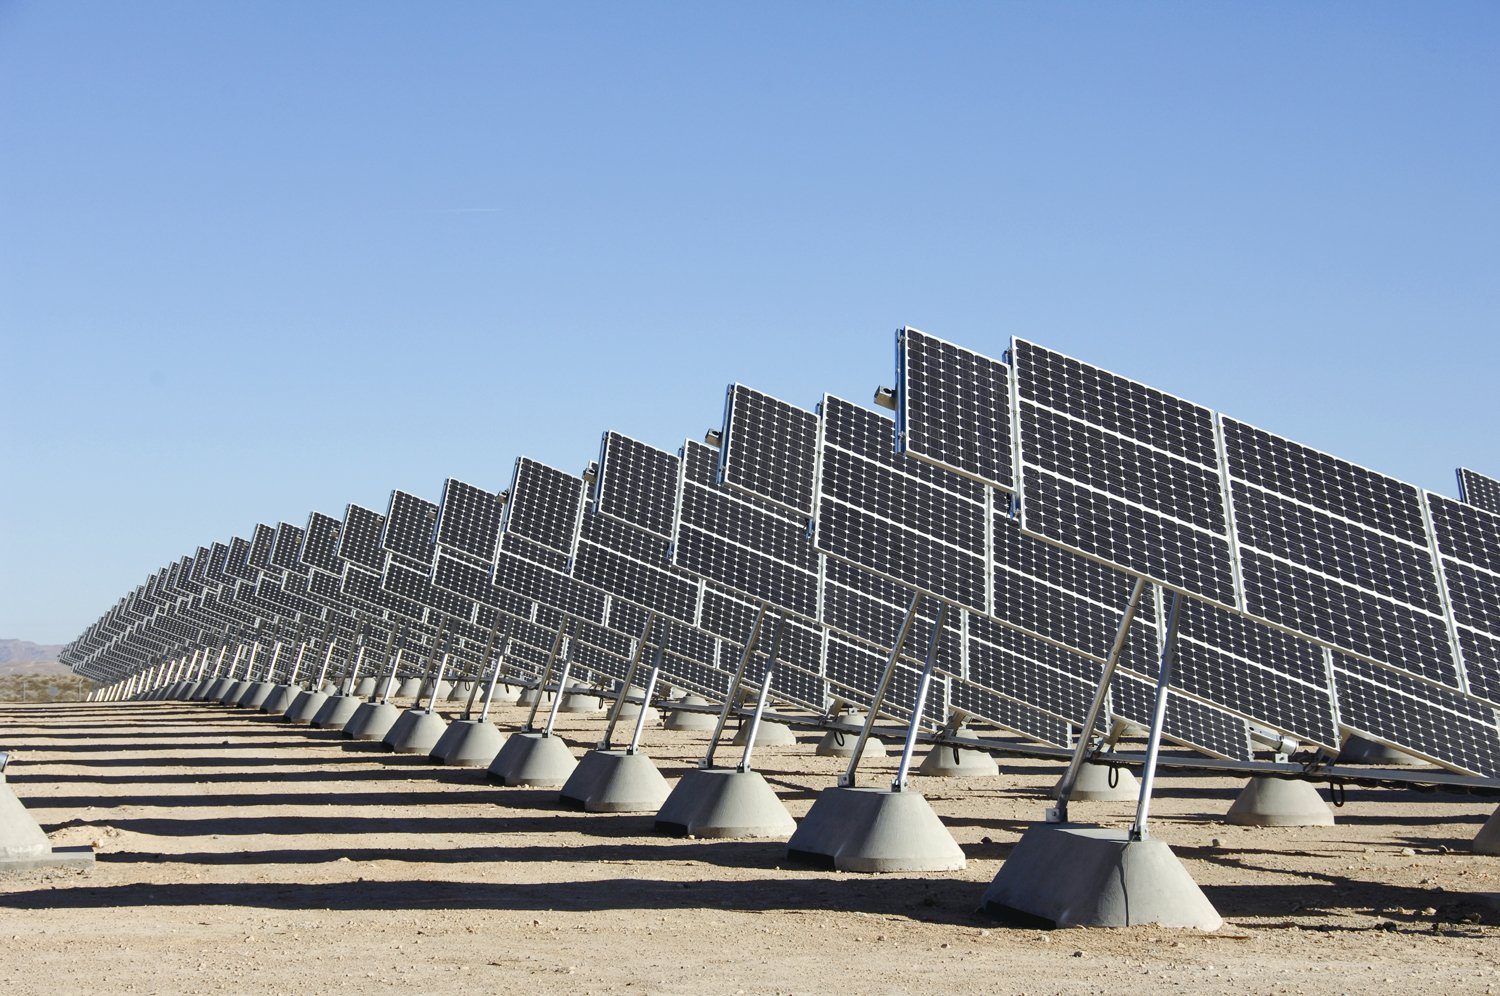 KIRTLAND AIR FORCE BASE, N.M. -- Sandia National Laboratories recently gave a glimpse of future uses of solar power.